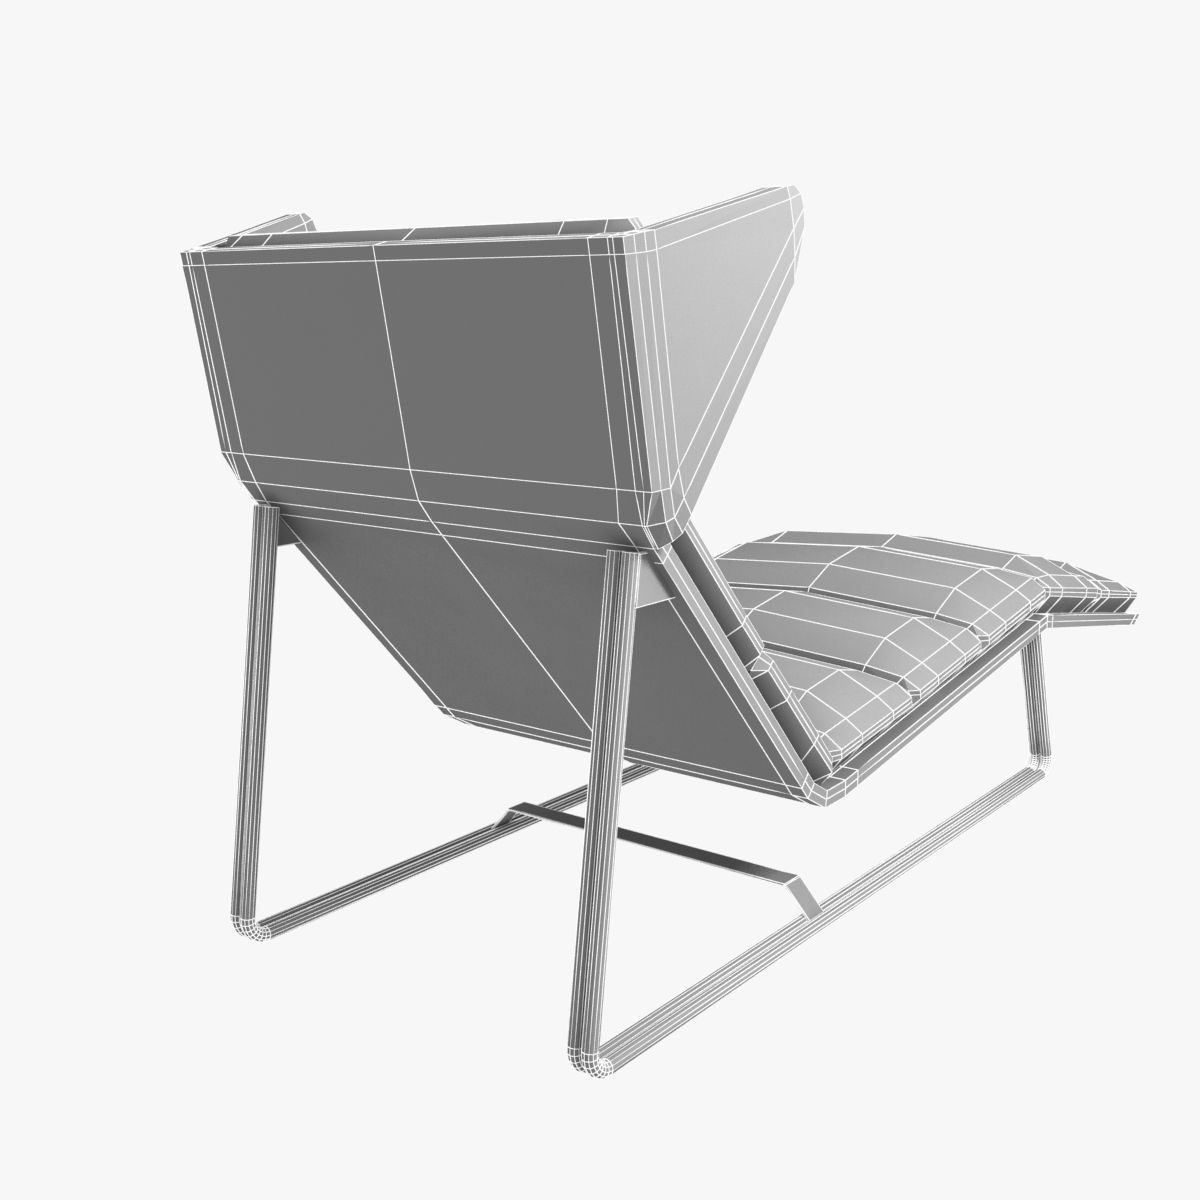 Esedra romea modern chaise lounge 3d model max obj 3ds fbx for Chaise modele